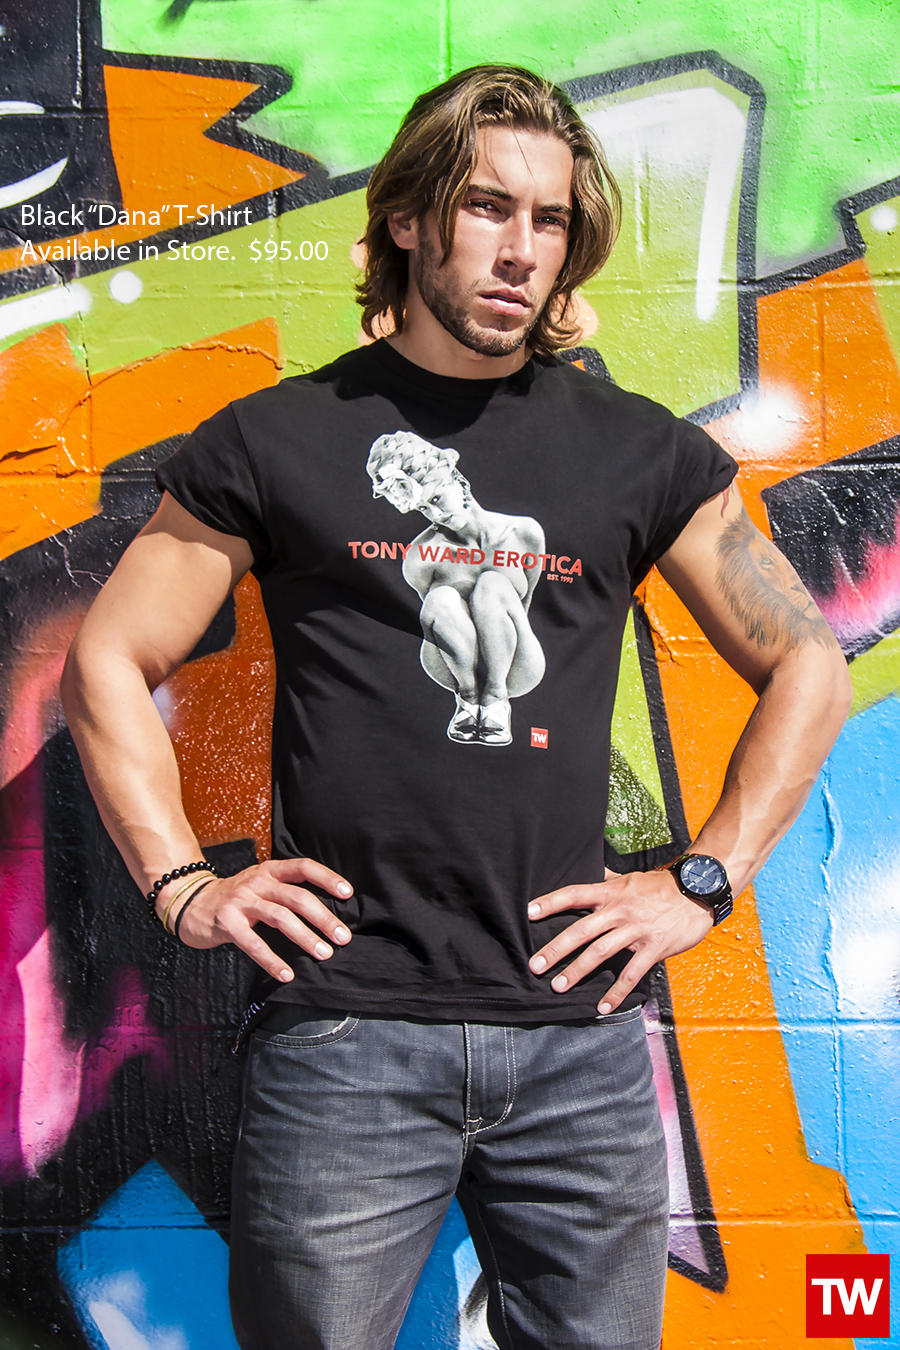 Tony_Ward_Studio_e_commerce_store_t-shirts_black_Dana_tee_sale_model_Luis